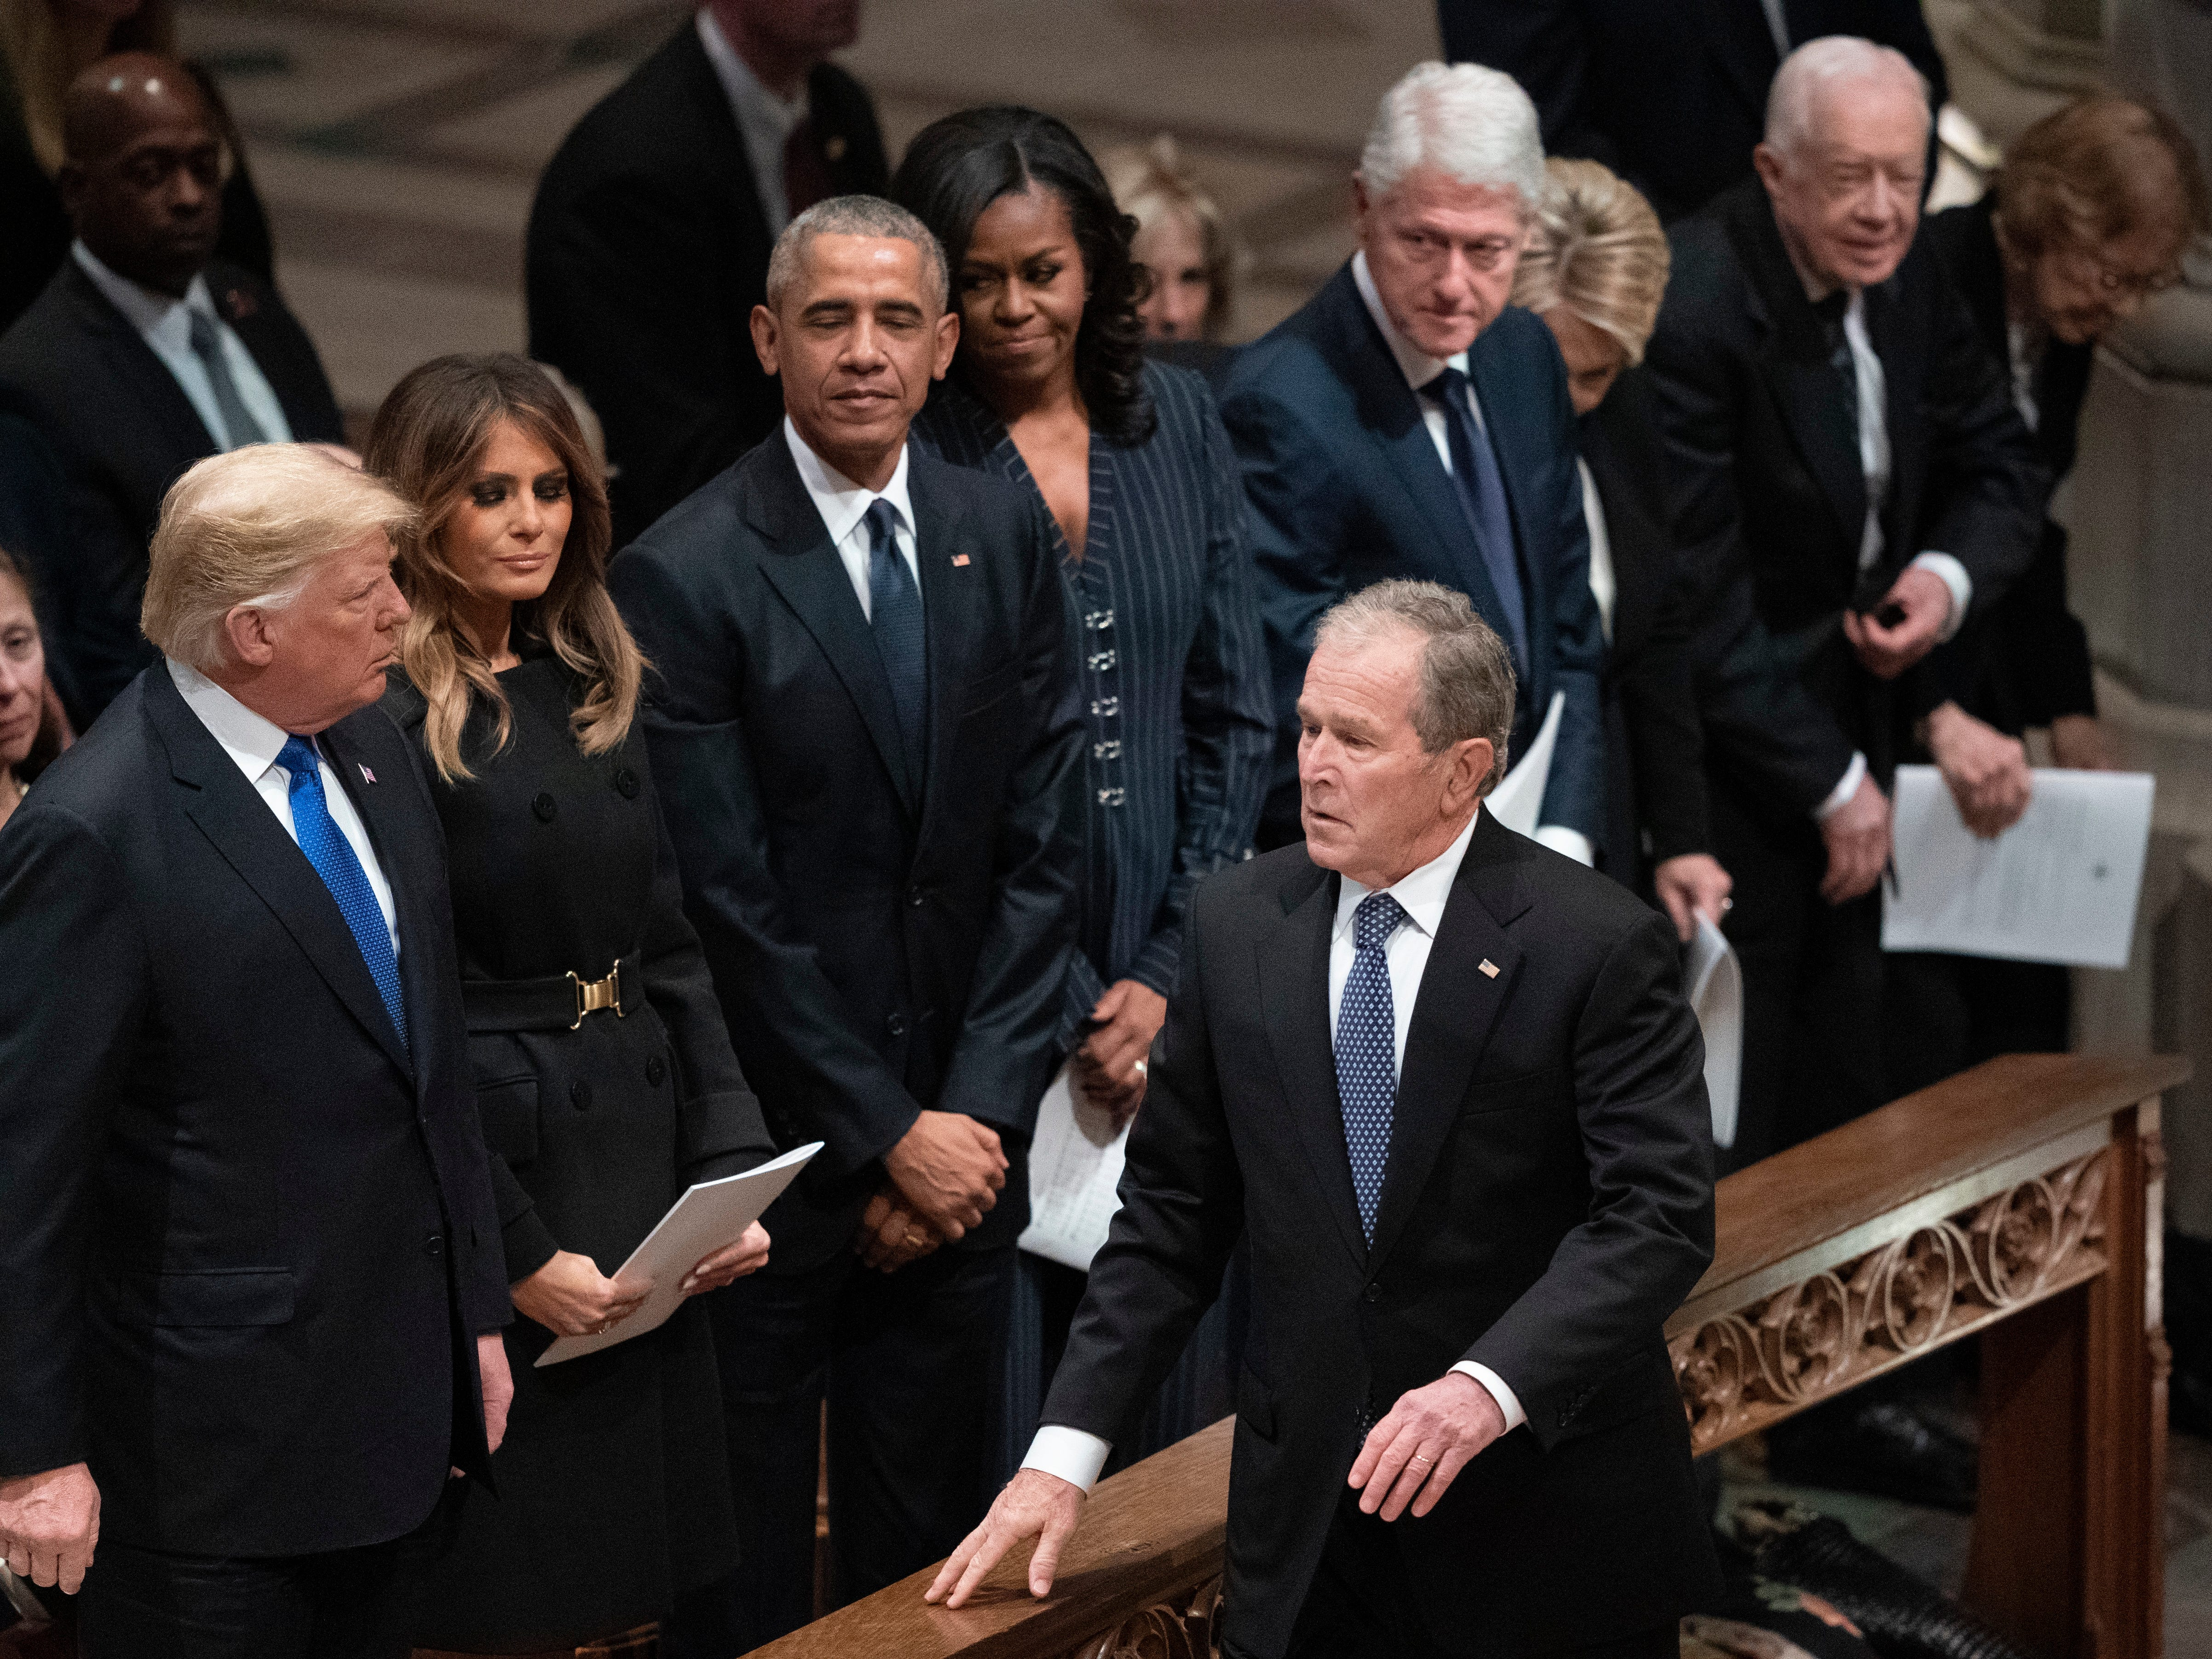 Former President George W. Bush walks to his seat after greeting President Donald Trump, first lady Melania Trump, former President Barack Obama, Michelle Obama, former President Bill Clinton, former Secretary of State Hillary Clinton, former President Jimmy Carter and Rosalynn Carter during a State Funeral for his father, former President George H.W. Bush, at the National Cathedral, Wednesday, Dec. 5, 2018, in Washington.